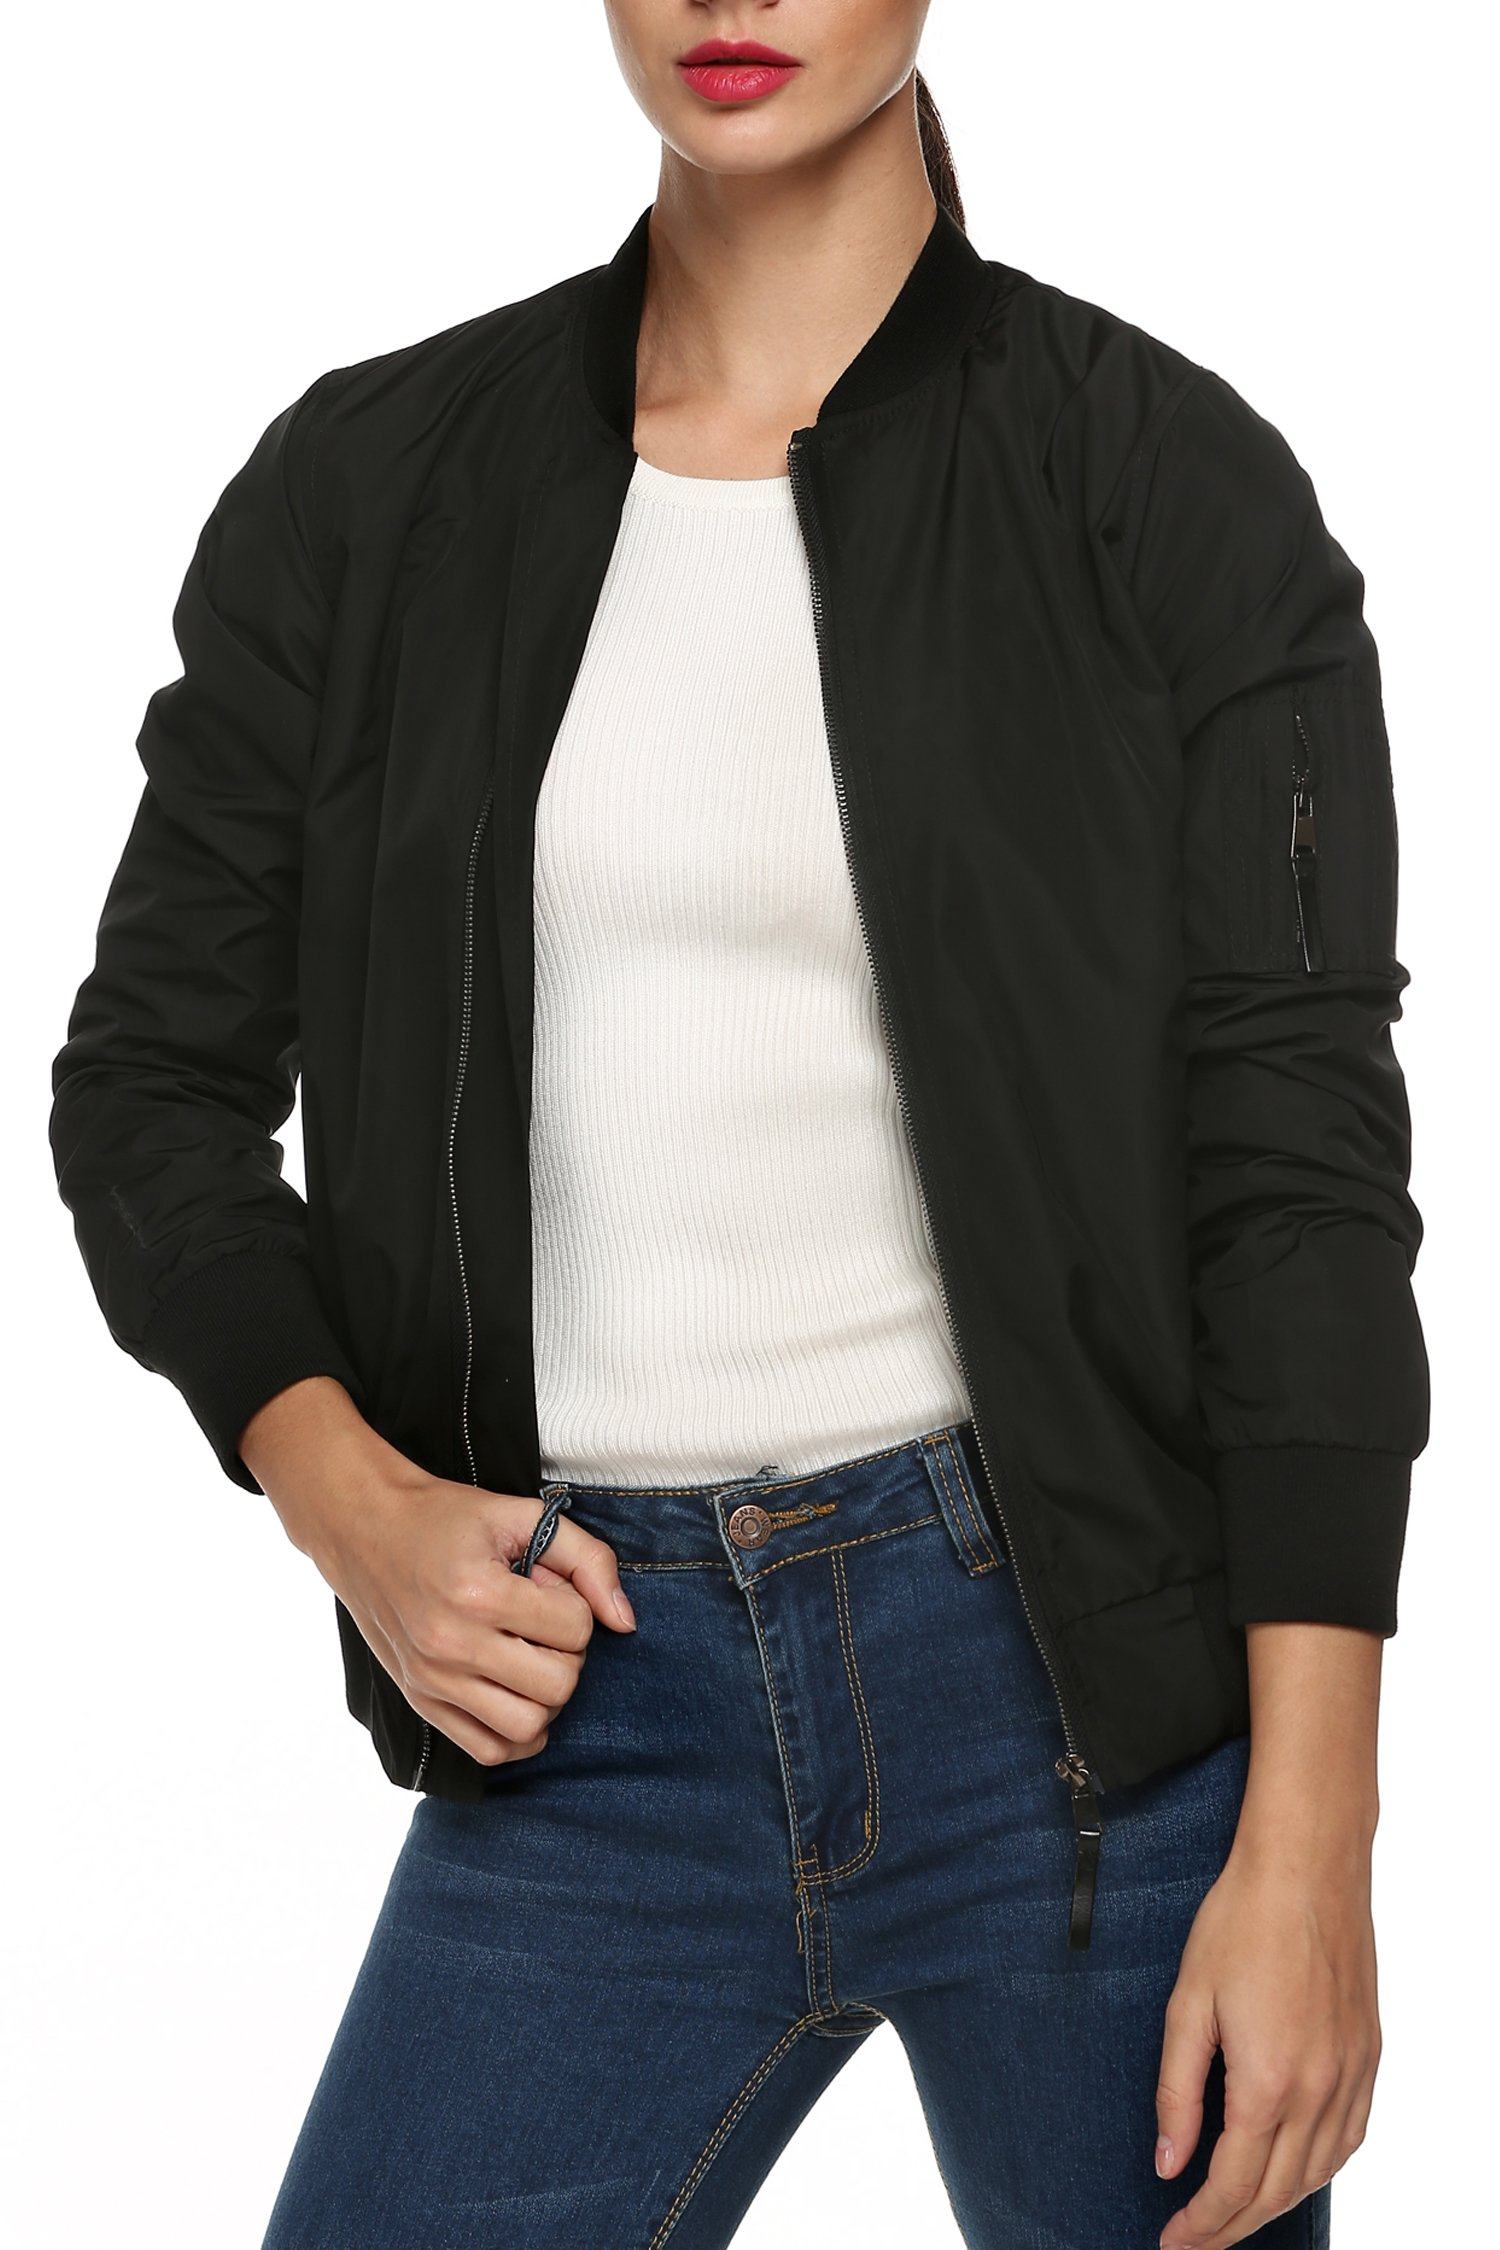 Zeagoo Womens Classic Quilted Jacket Short Bomber Jacket Coat, Black New, Small